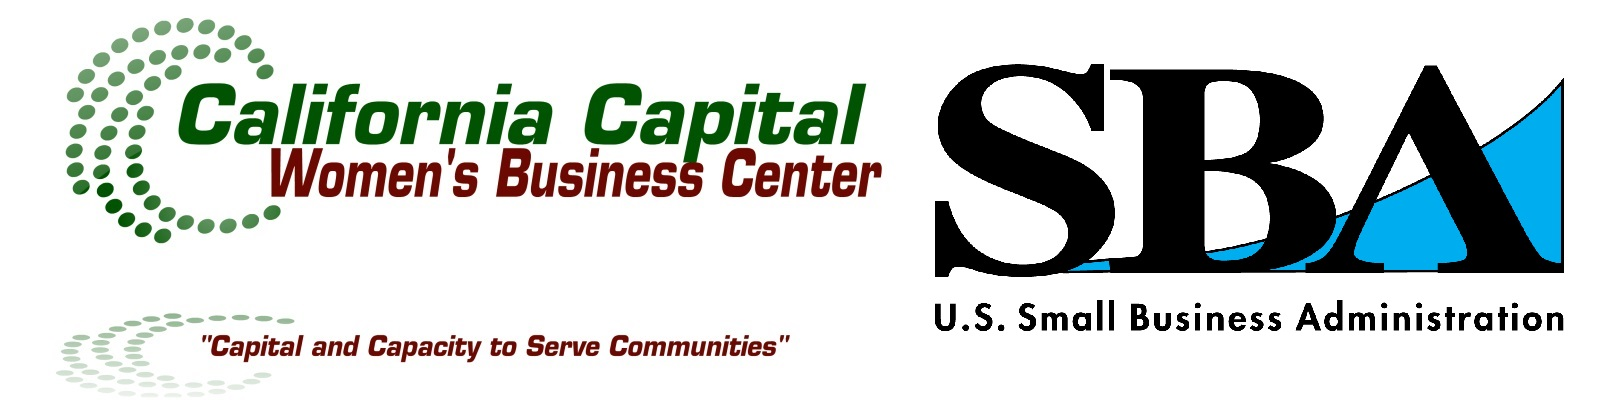 California Capital Women's Business Center and US Small Business Administration Logos